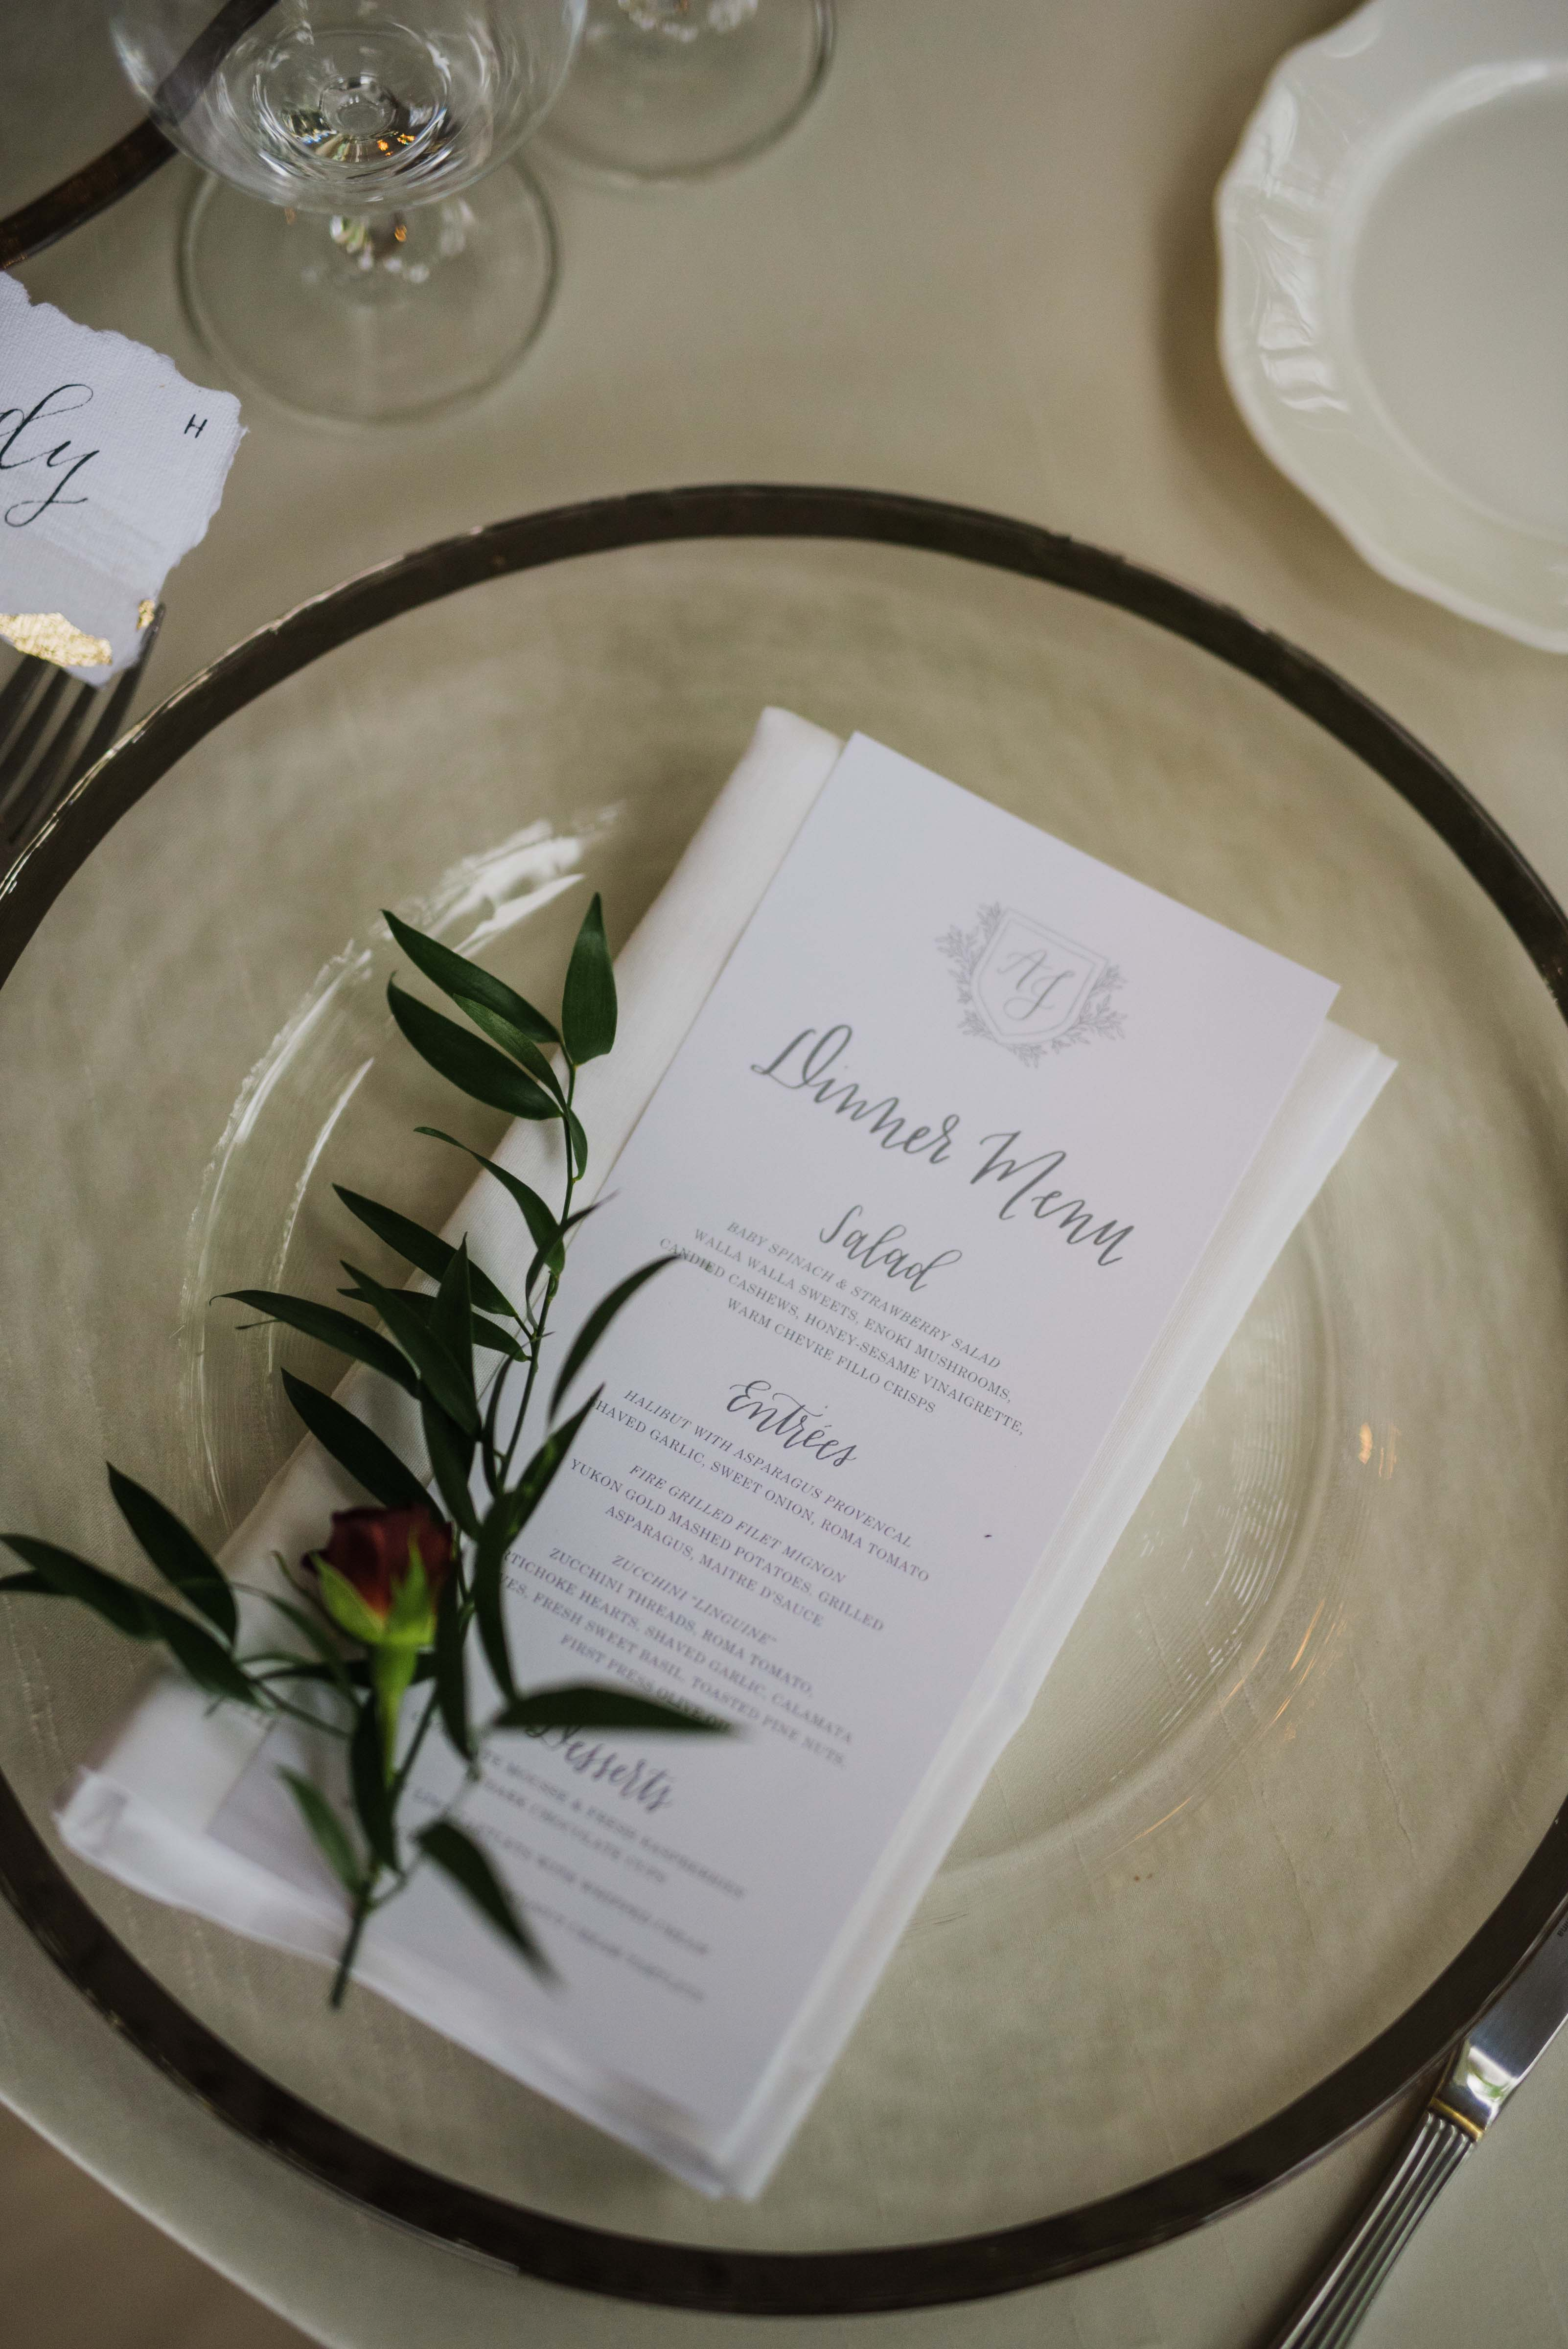 table setting with charger plate, menu, and greenery